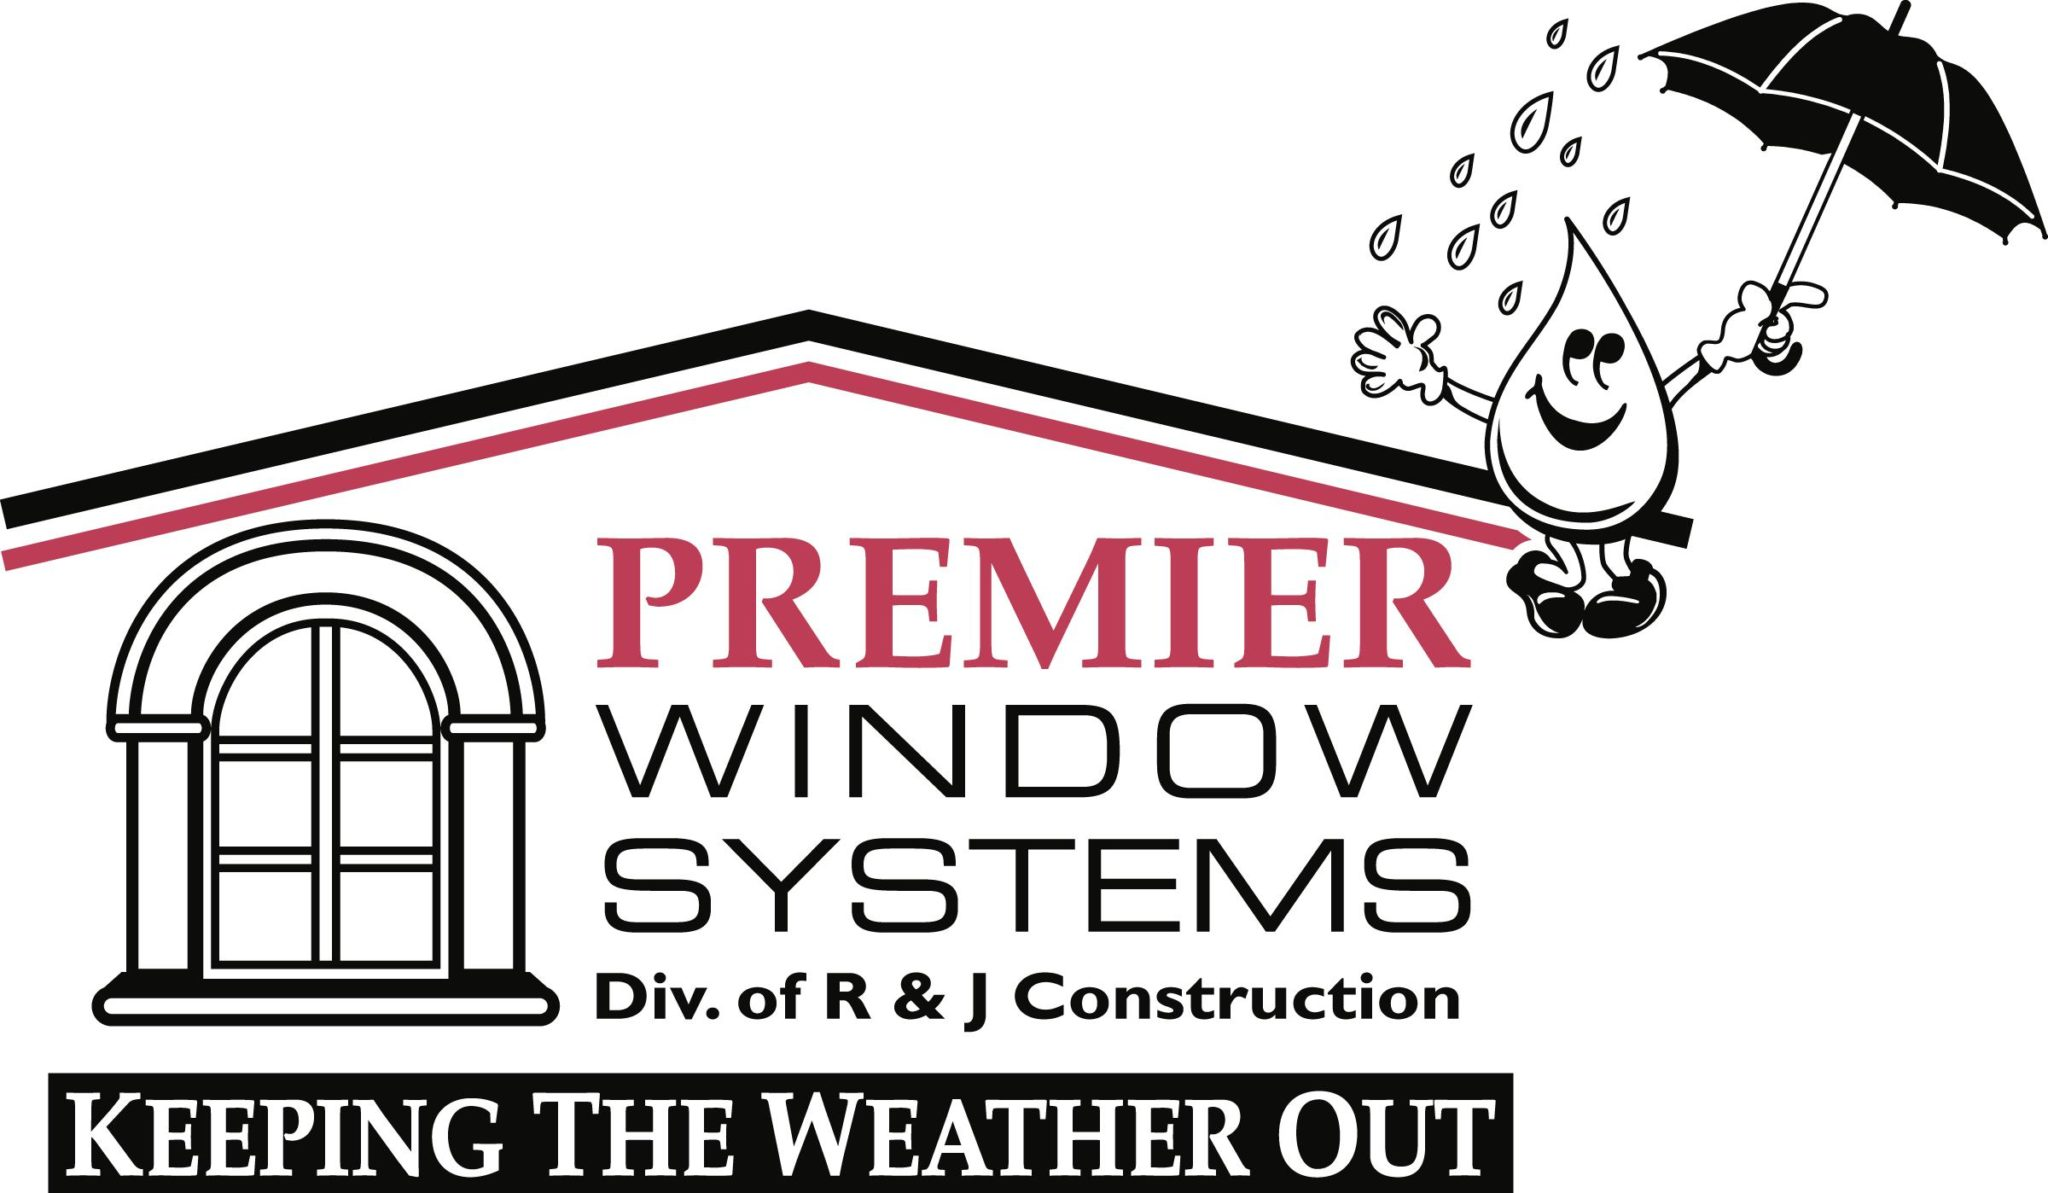 premier window systems logo